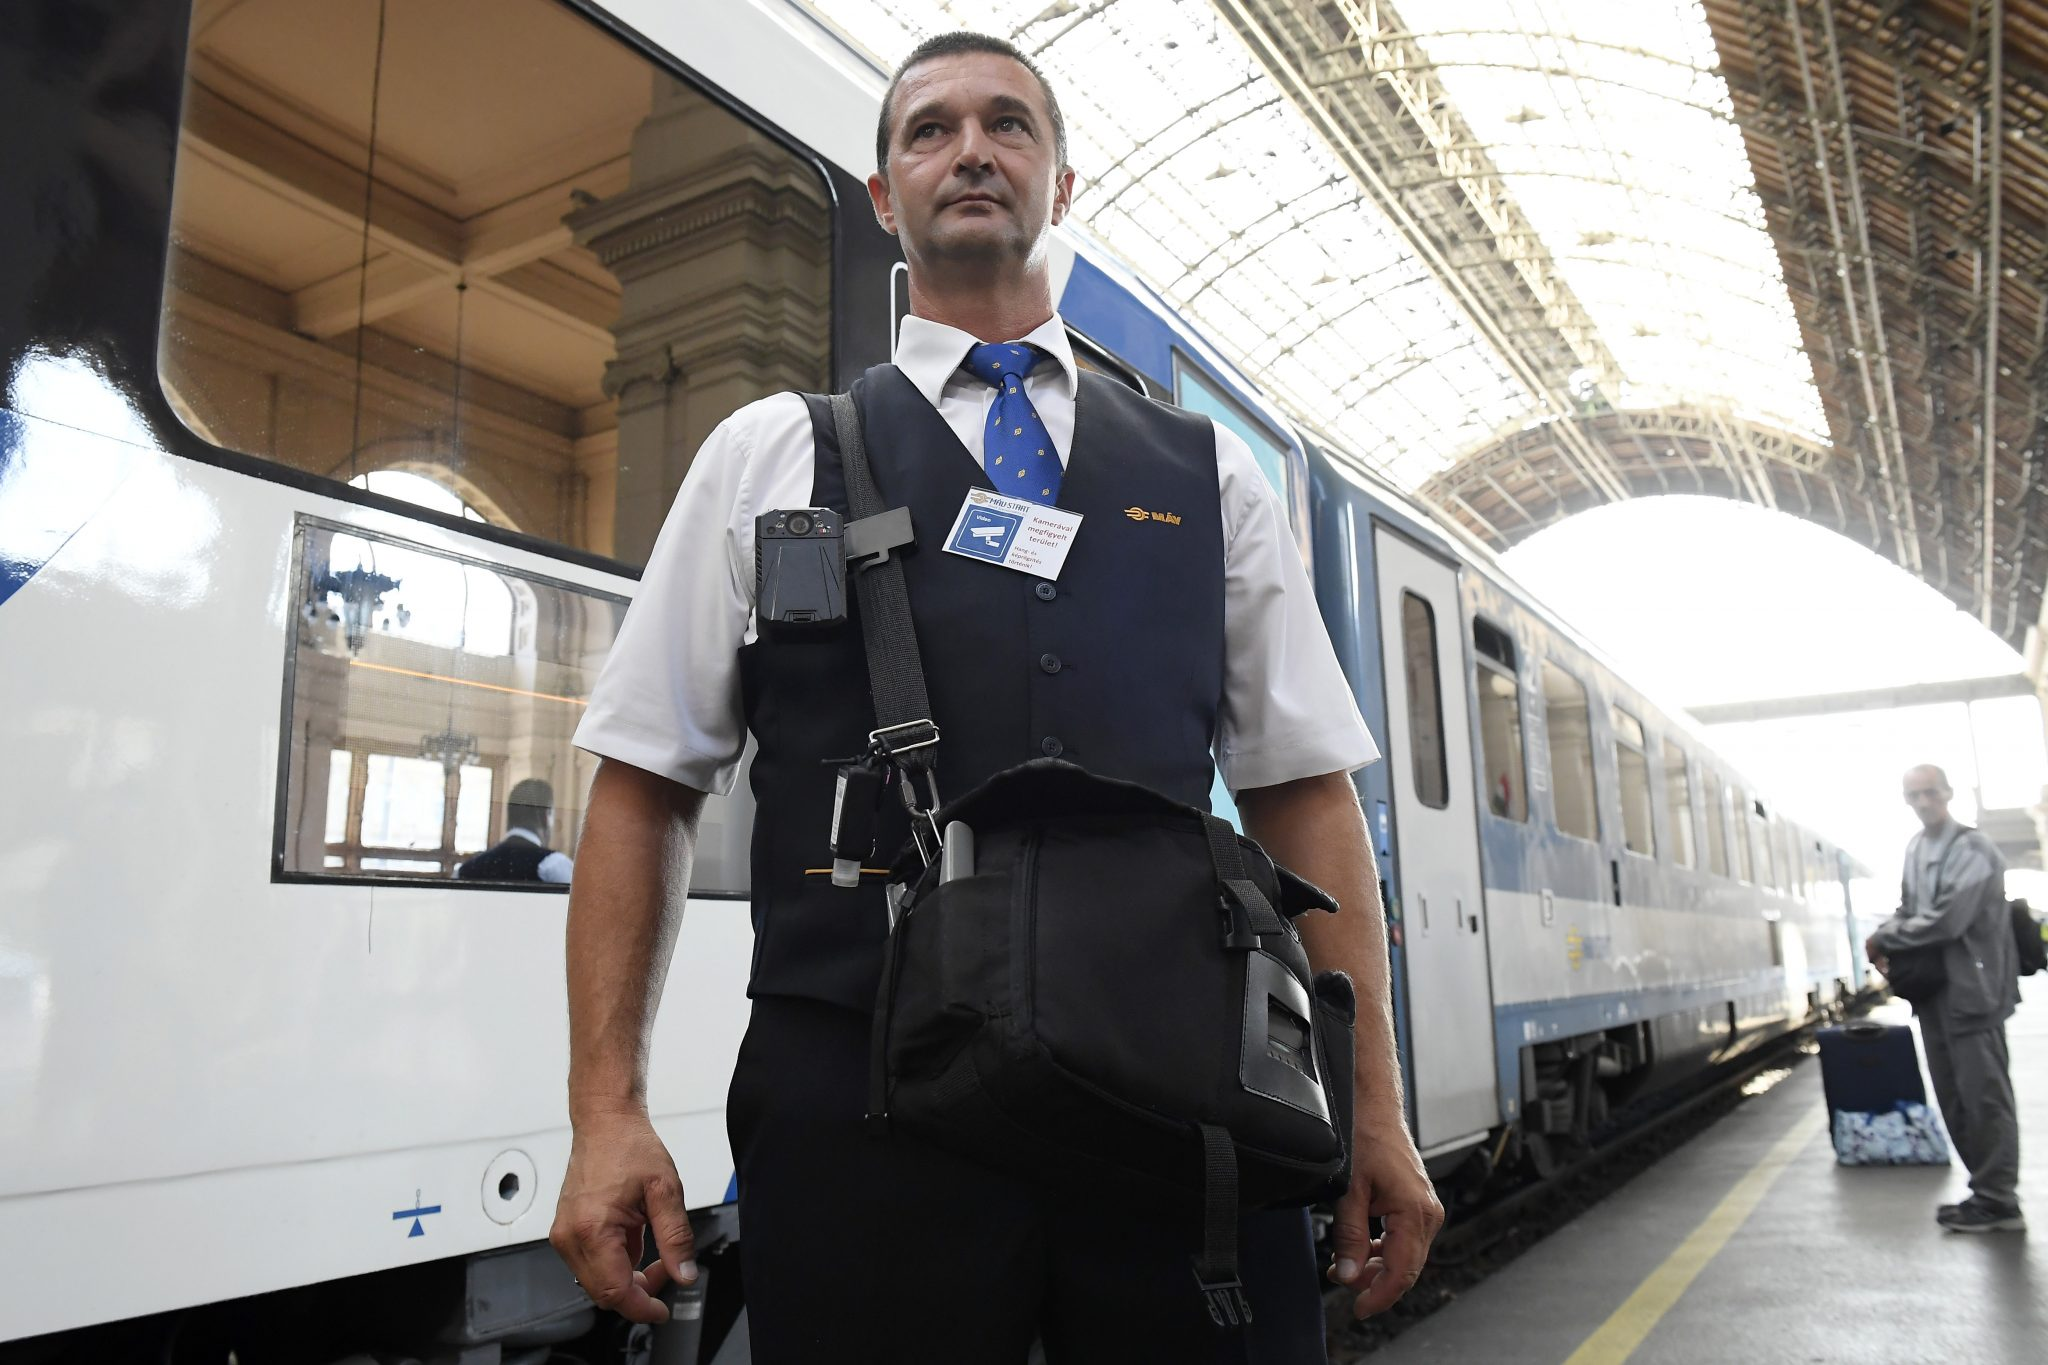 MÁV Installs 103 Body Cameras to Protect Ticket Inspectors post's picture